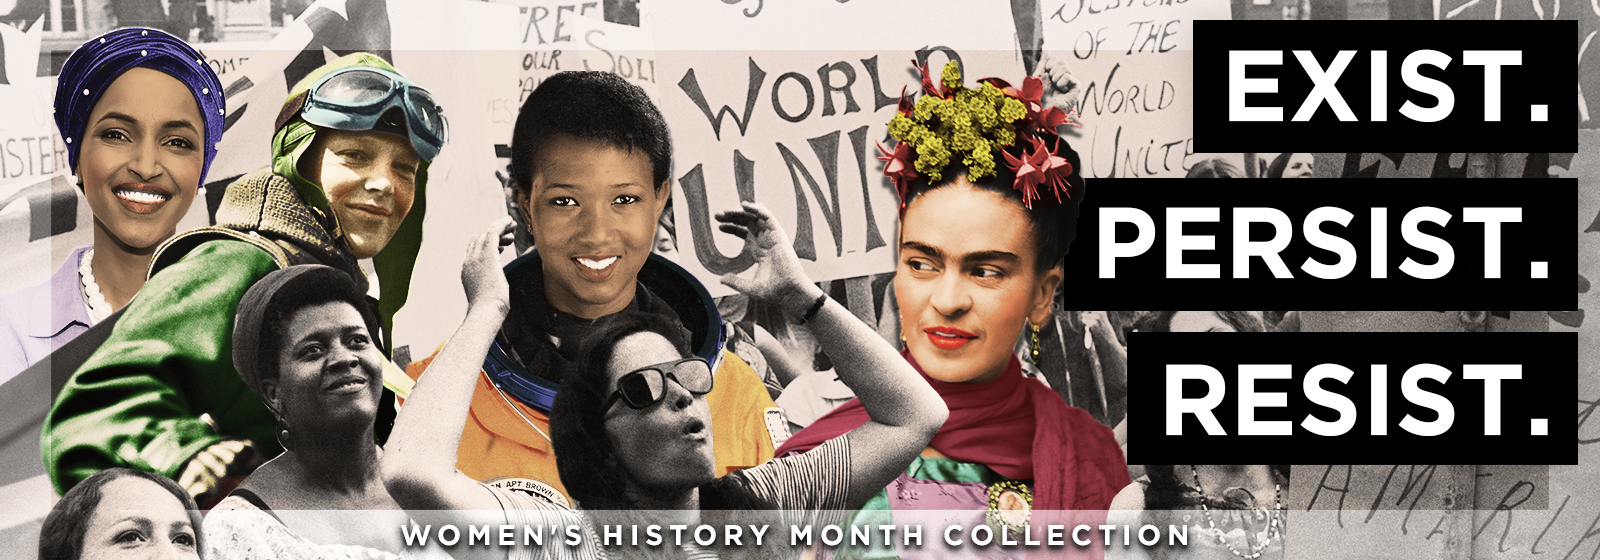 Women's History Month Collection Store